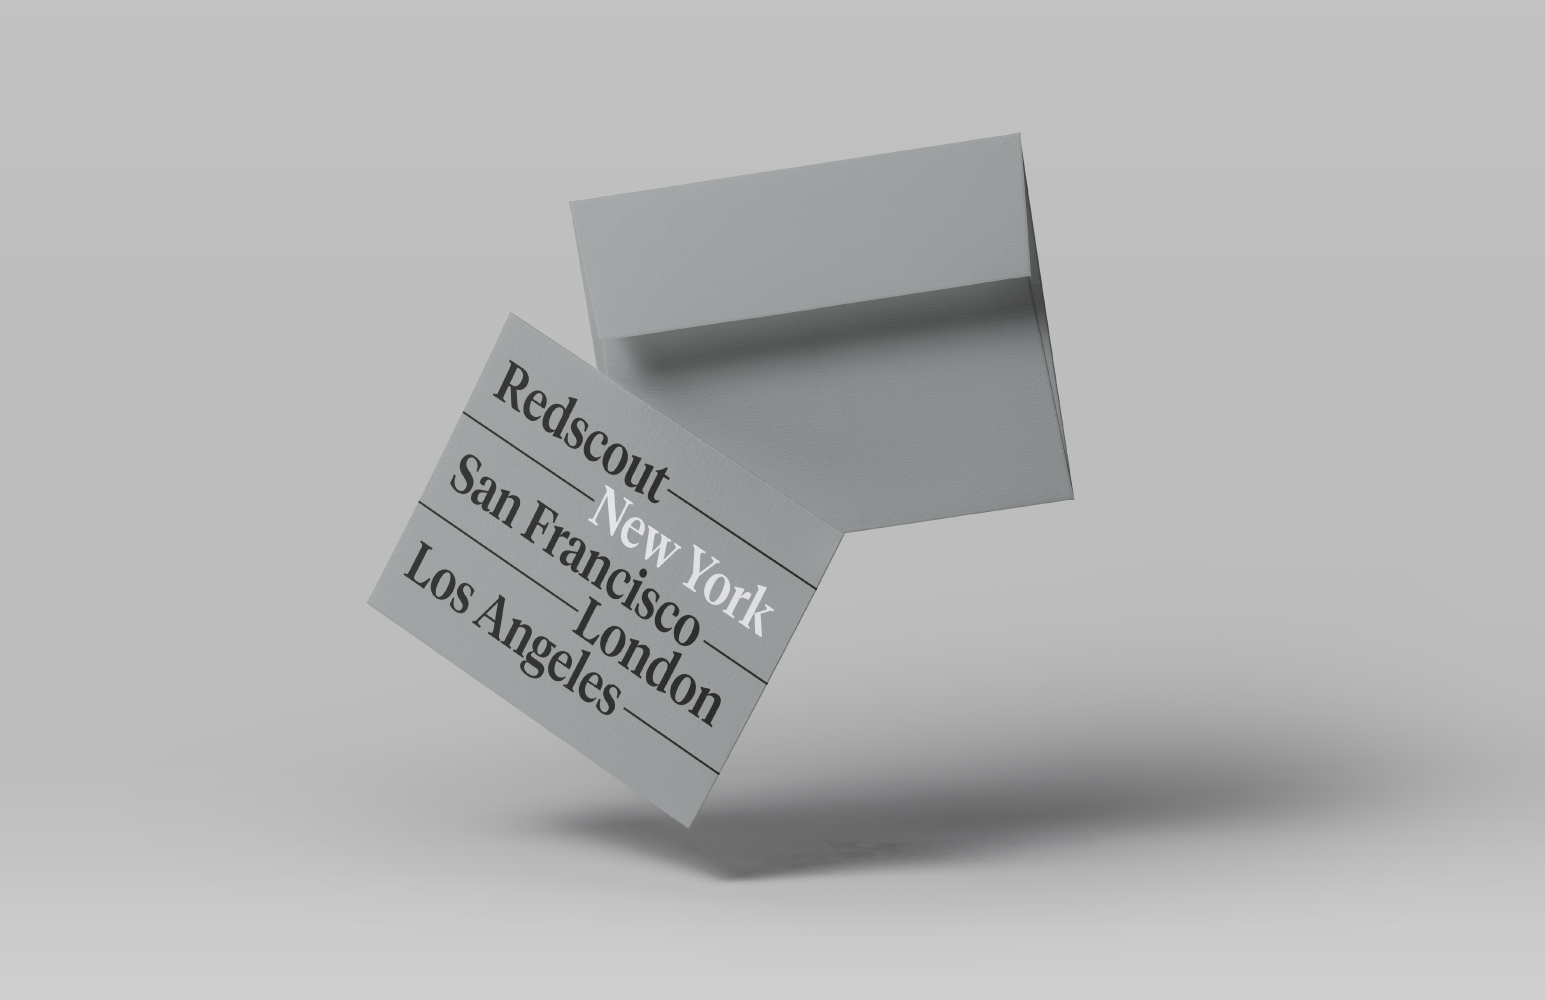 Redscout Stationery